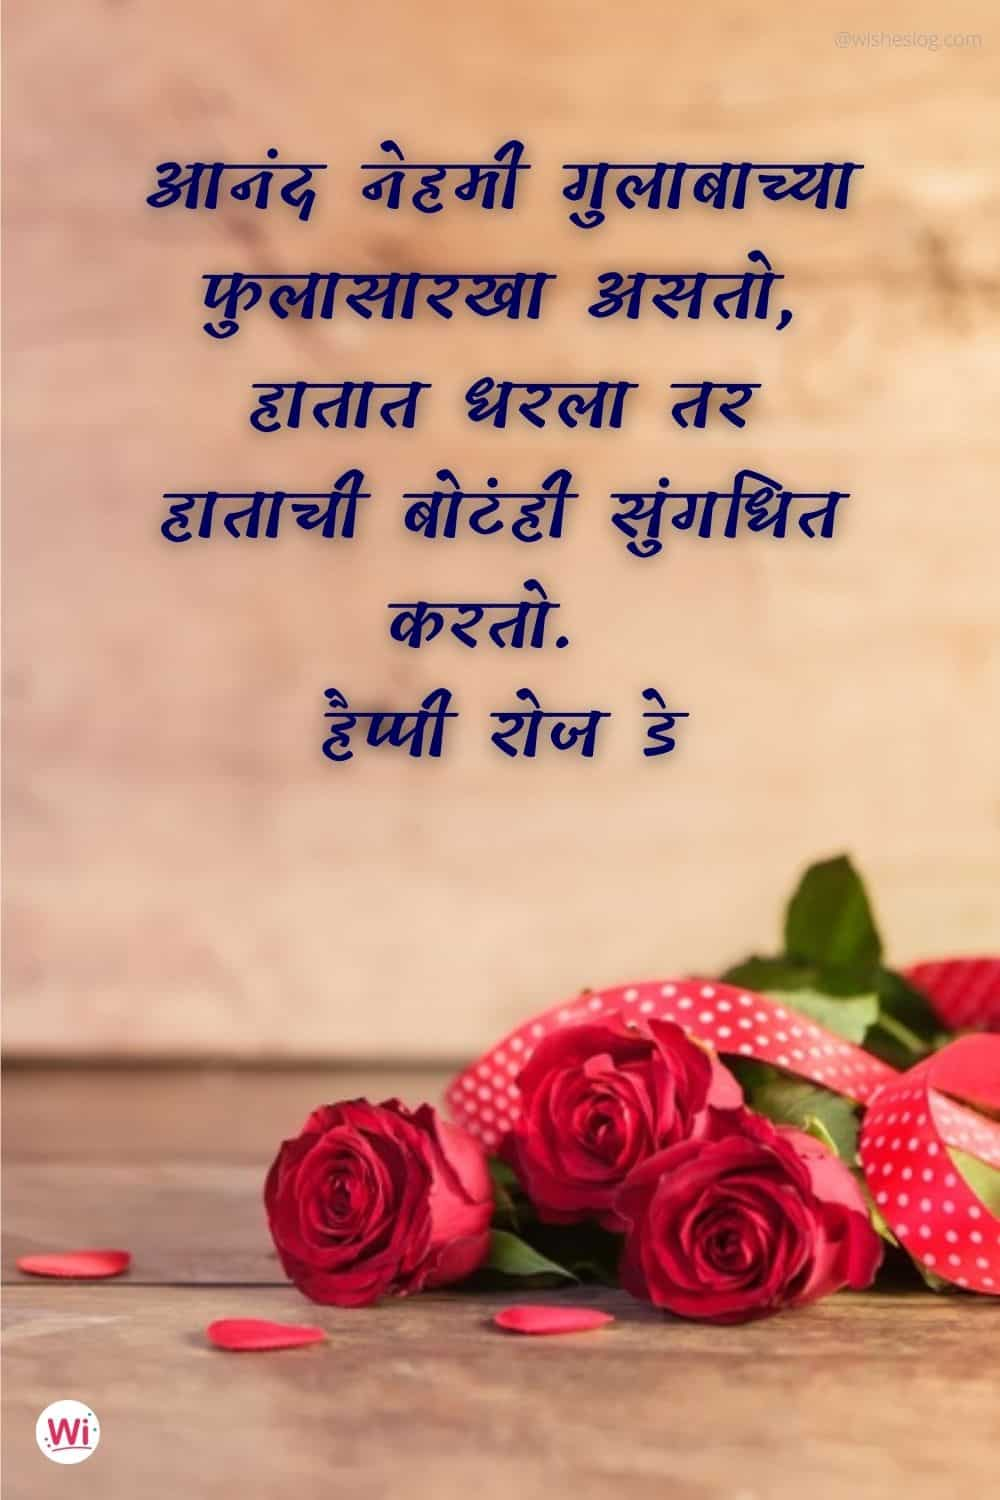 happy rose day whatsapp status in marathi